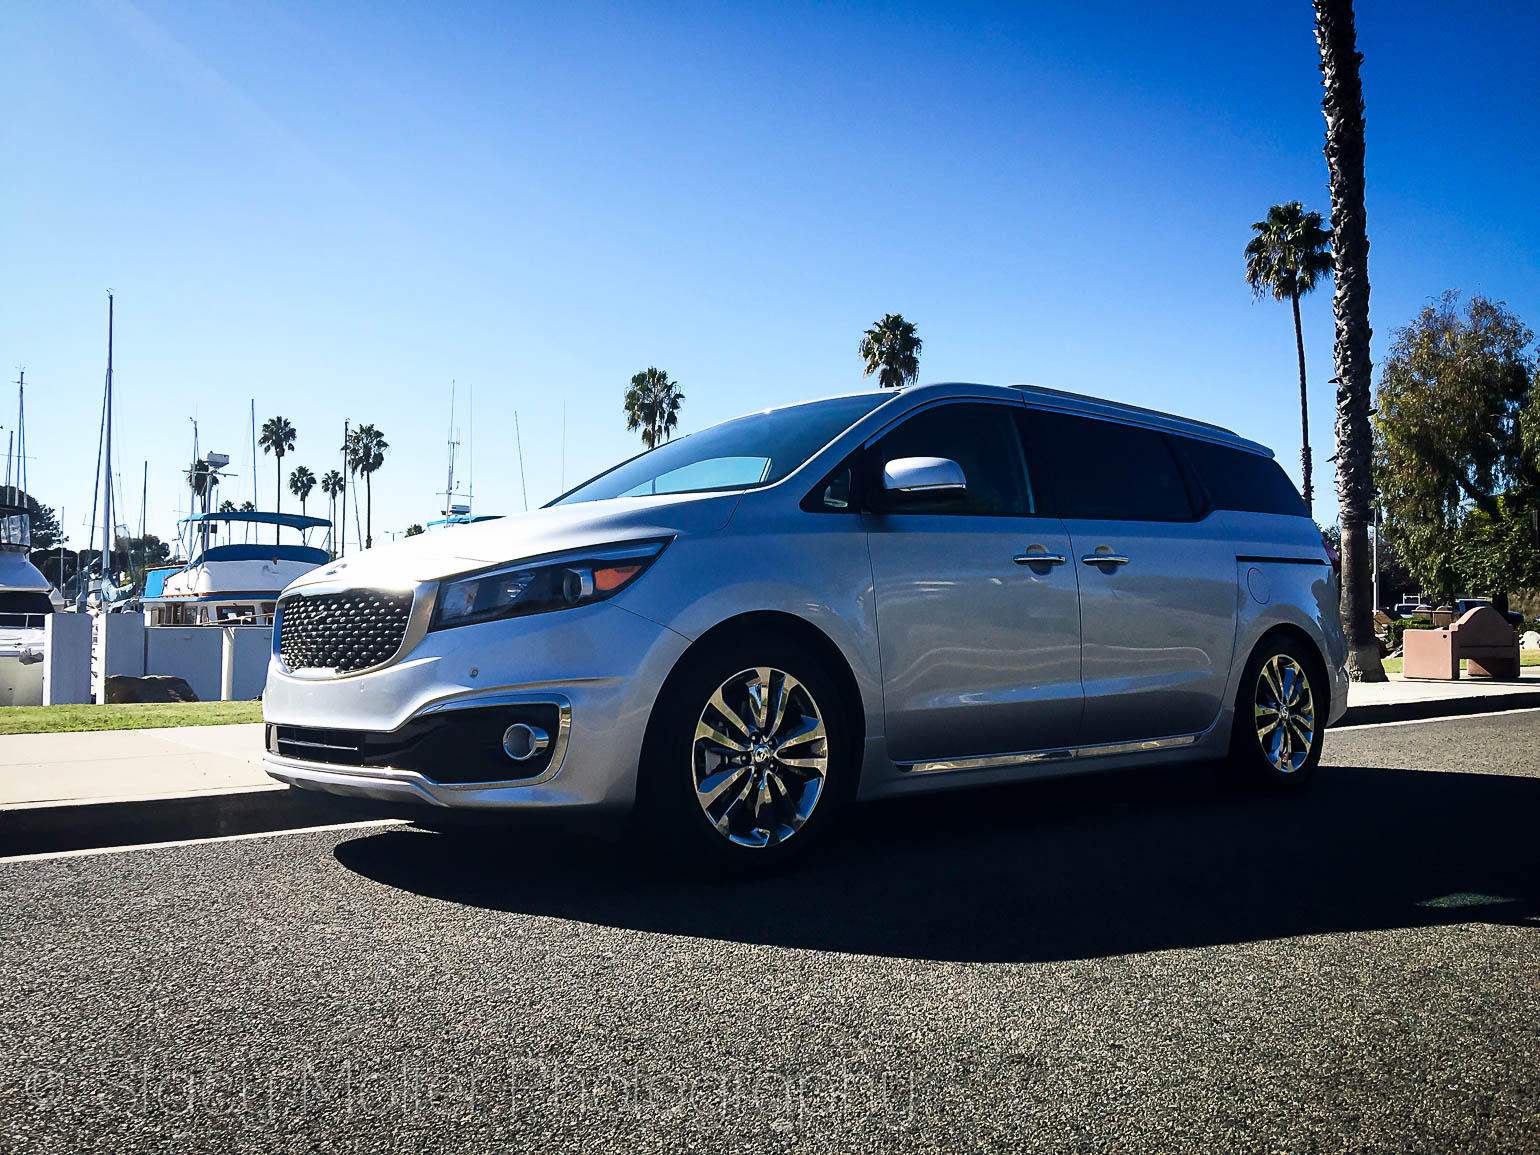 Exploring California in the 2016 Kia Motors Sedona SX-L